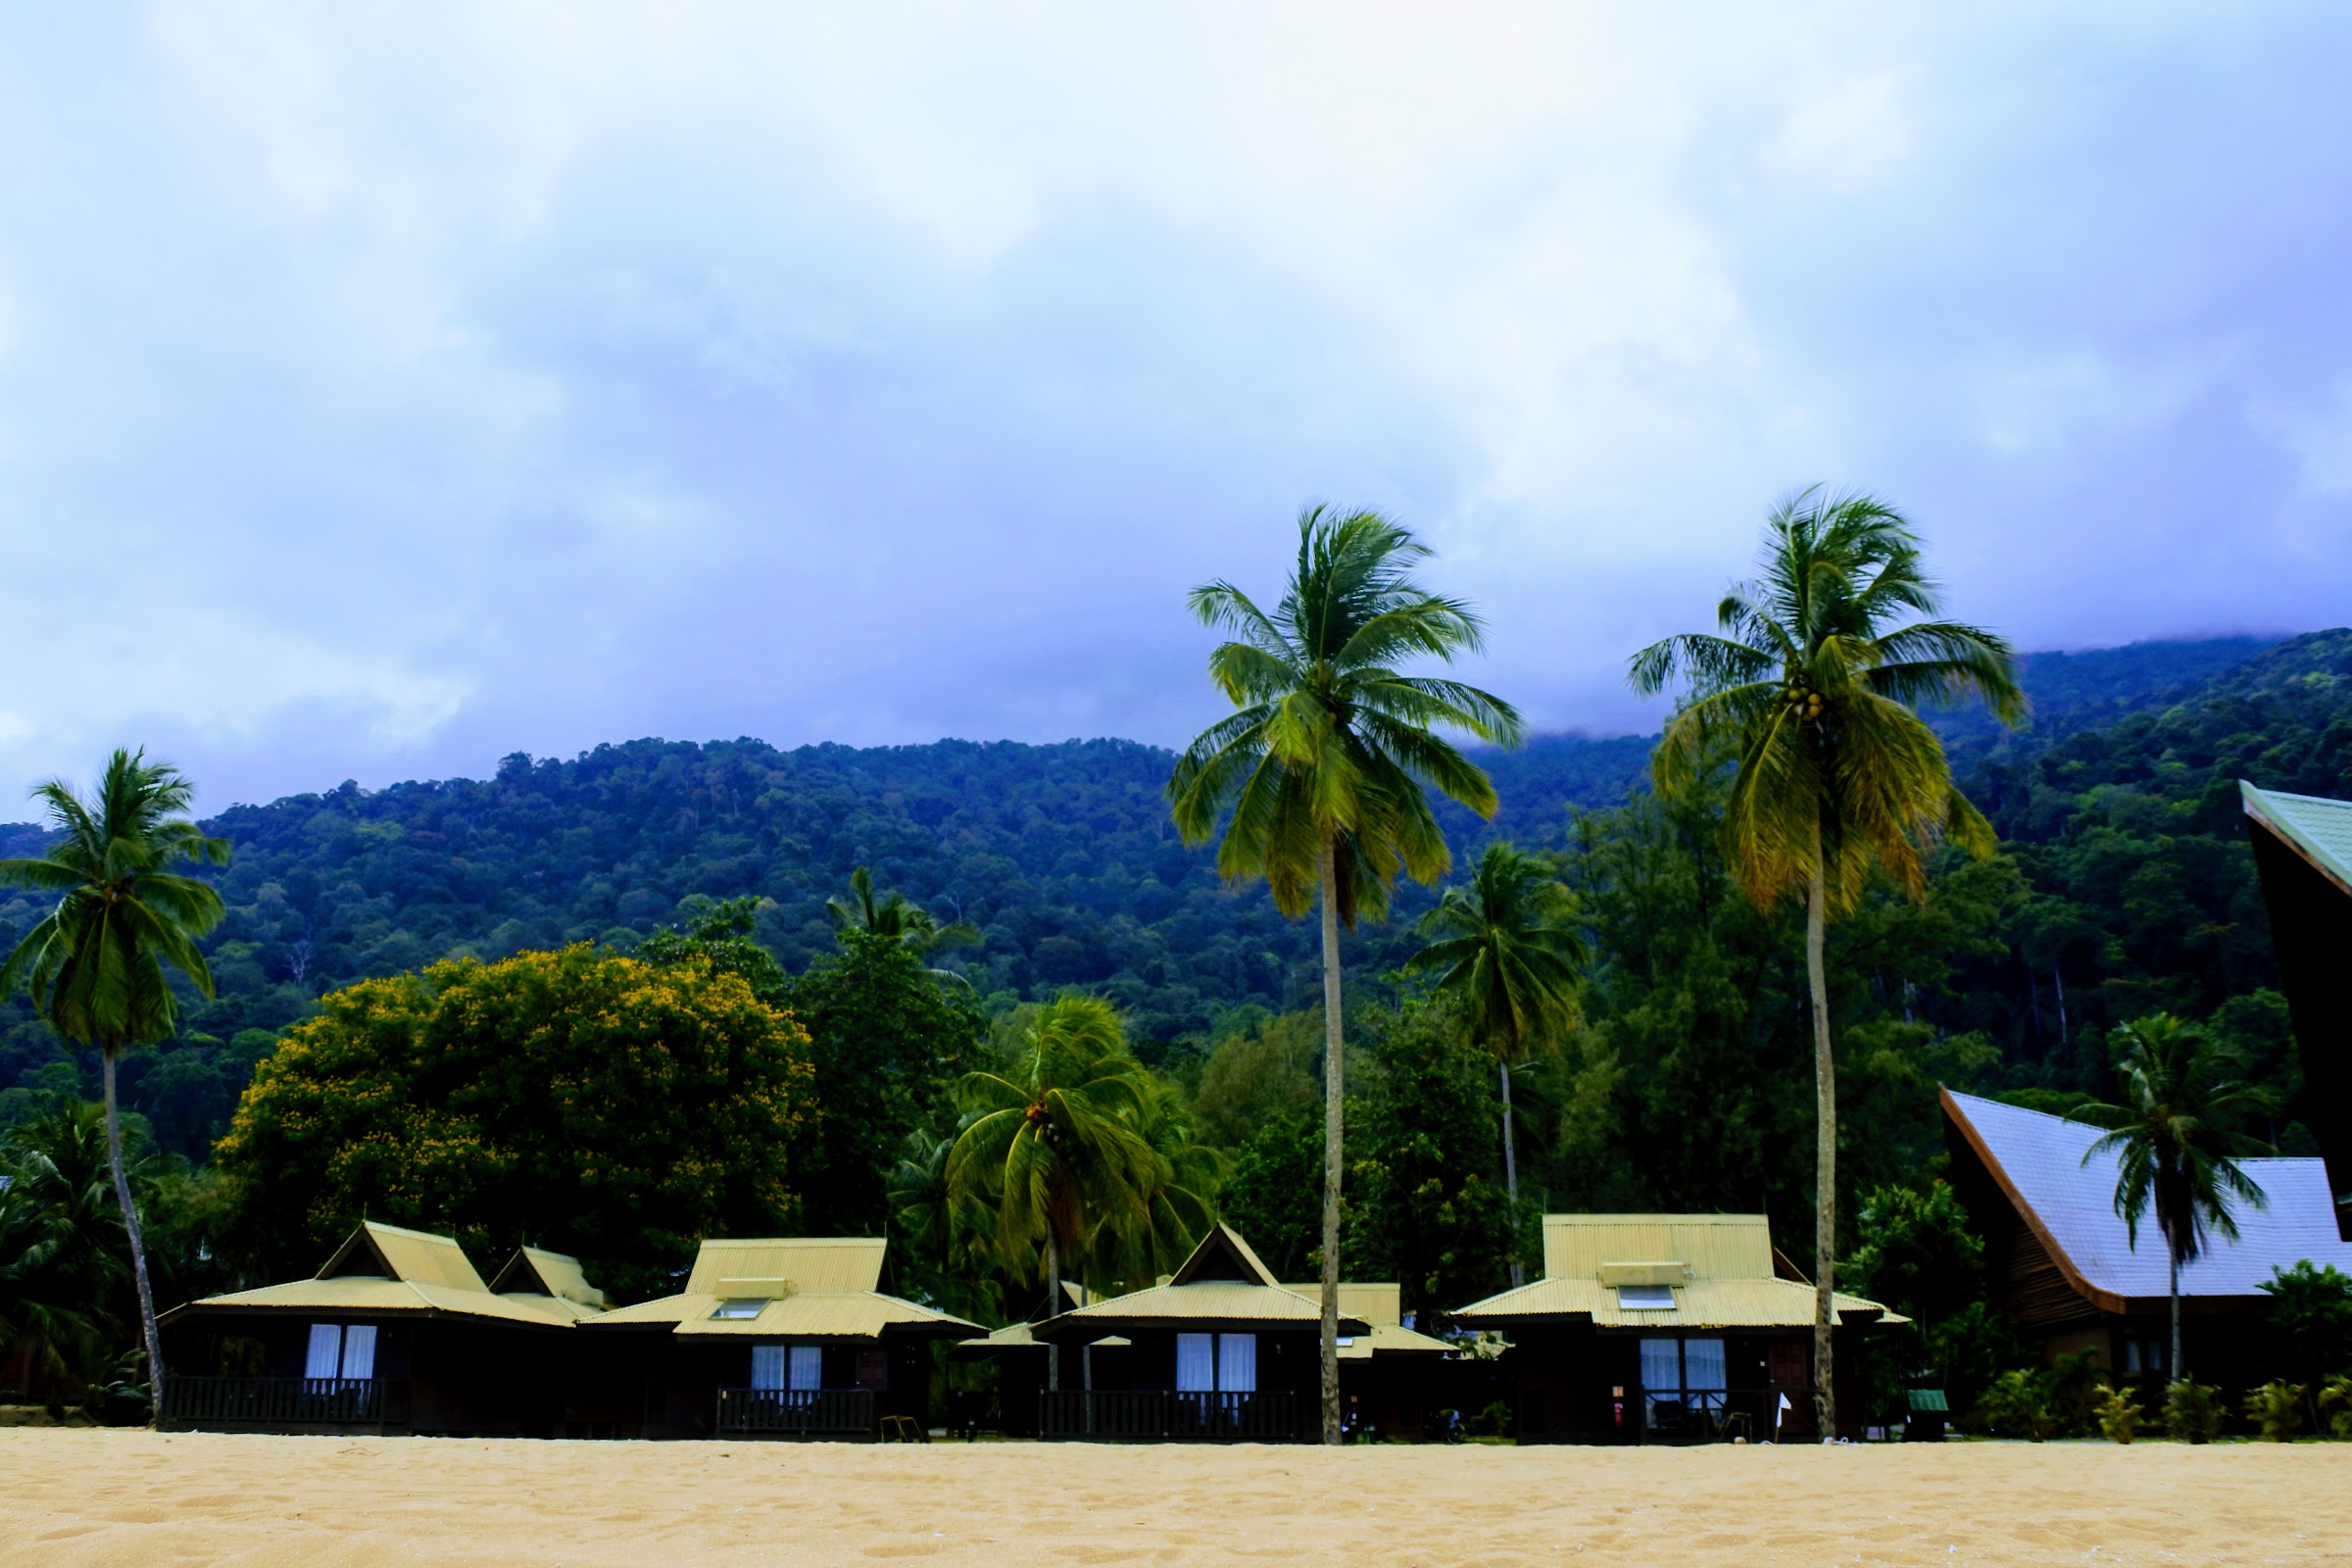 This is our honest review of Berjaya Tioman Resort